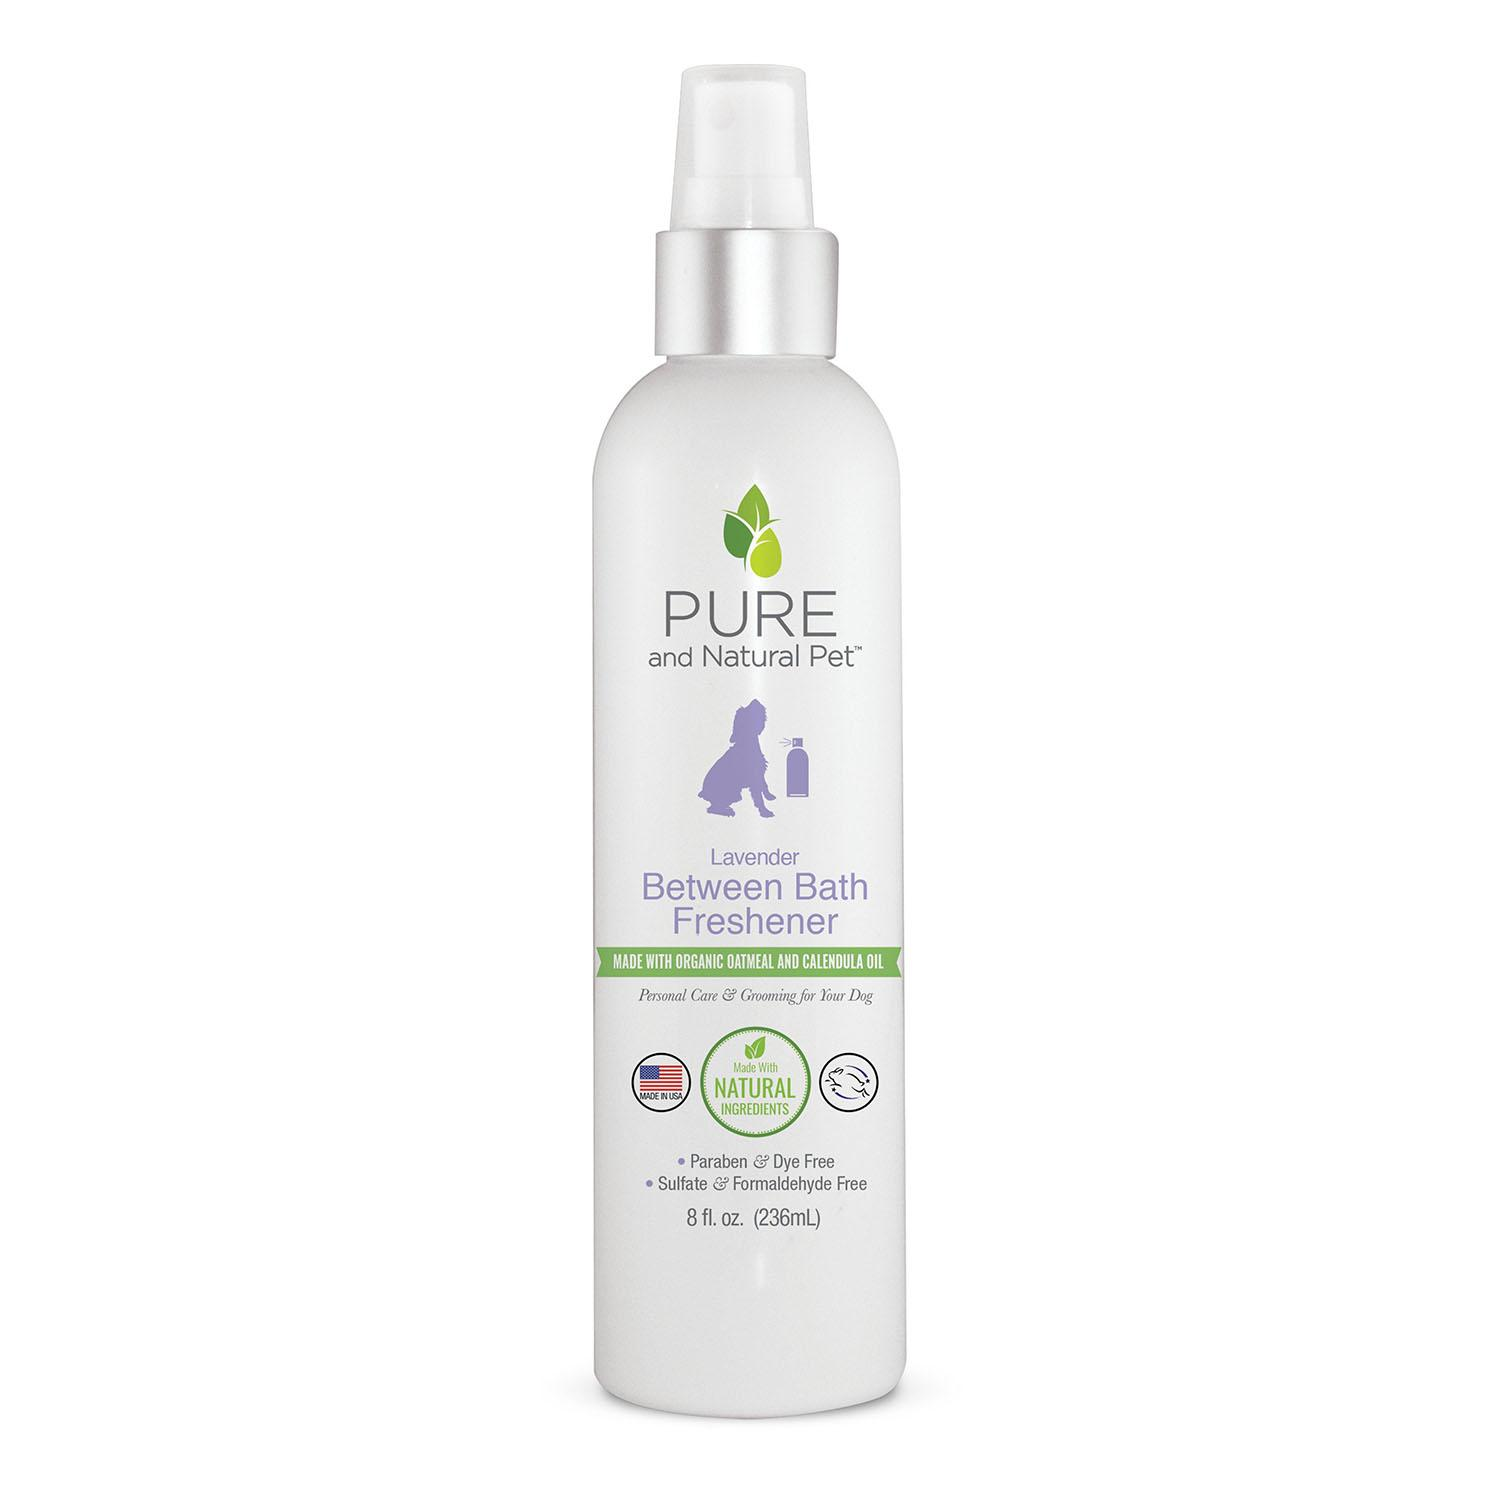 Pure and Natural Pet Between Bath Freshener Spray for Dogs - Lavender